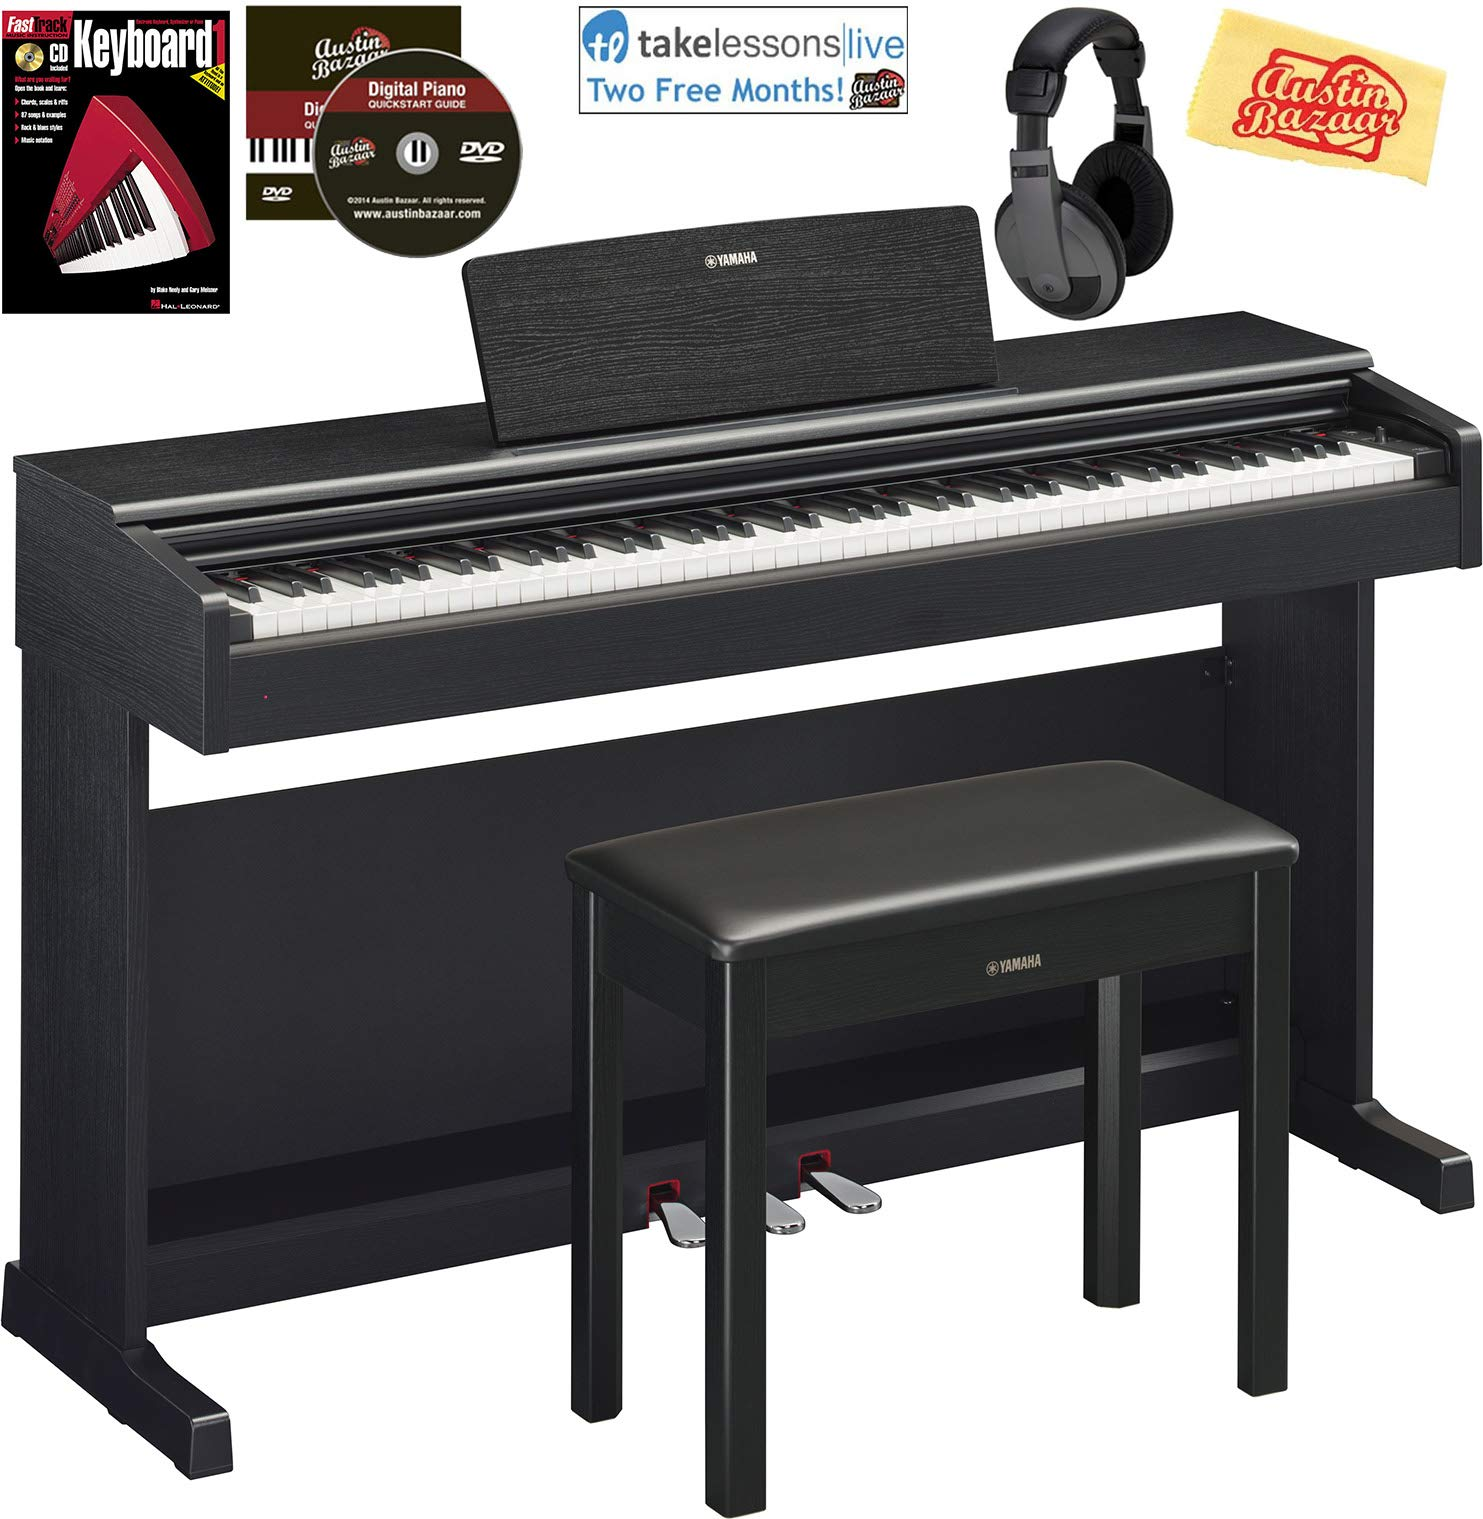 Yamaha Arius YDP-144 Traditional Console Digital Piano - Black Bundle with Furniture Bench, Headphones, Fast Track Music Book, Online Lessons, Austin Bazaar Instructional DVD, and Polishing Cloth by Yamaha